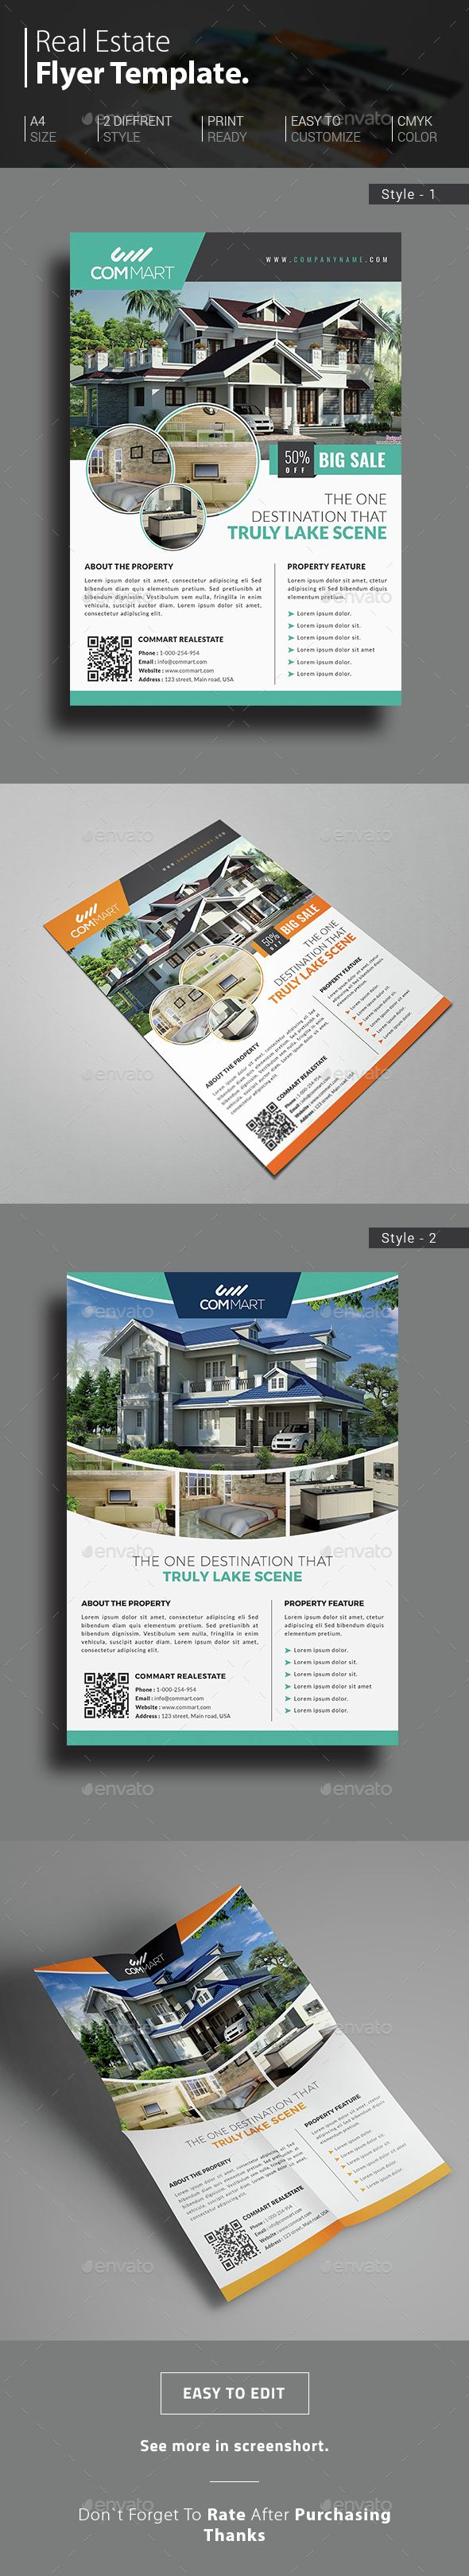 Real Estate Flyer Template, fully editable #OpenHouse #FlyerTemplate. http://graphicriver.net/item/real-estate-flyer/14604171?ref=themedevisers | color border shape